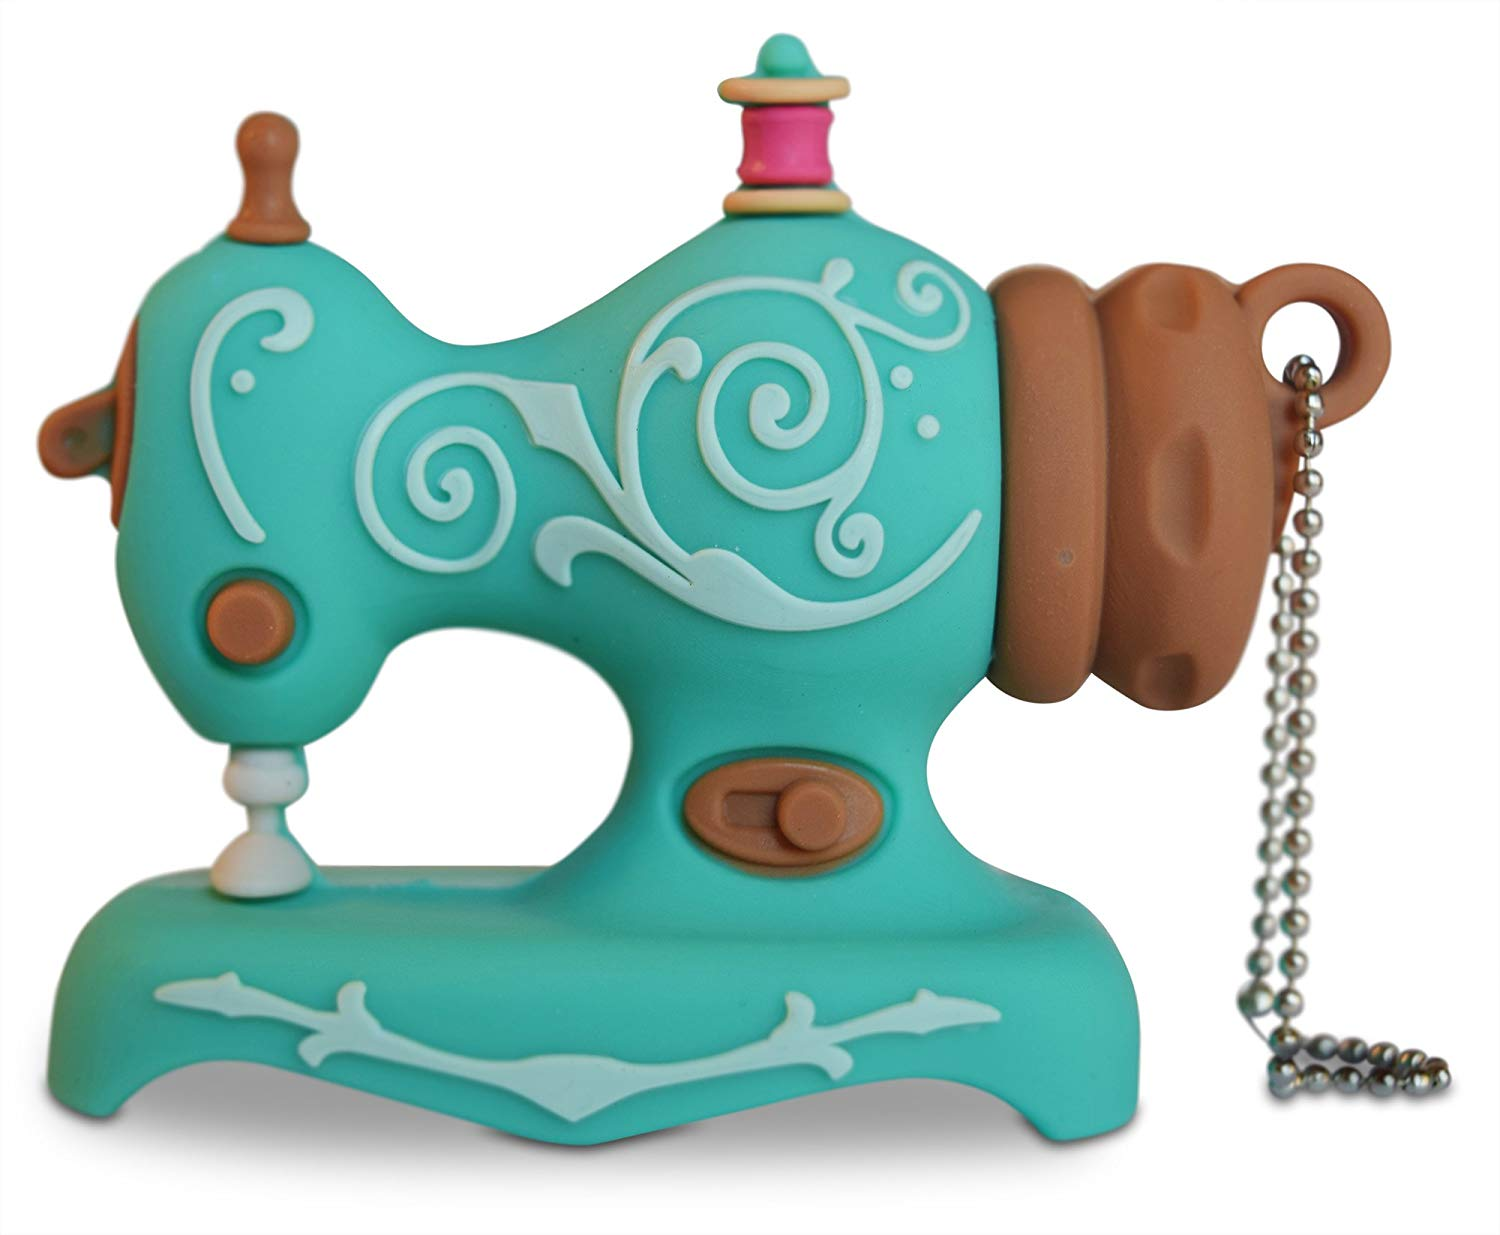 Adorable sewing machine USB flash